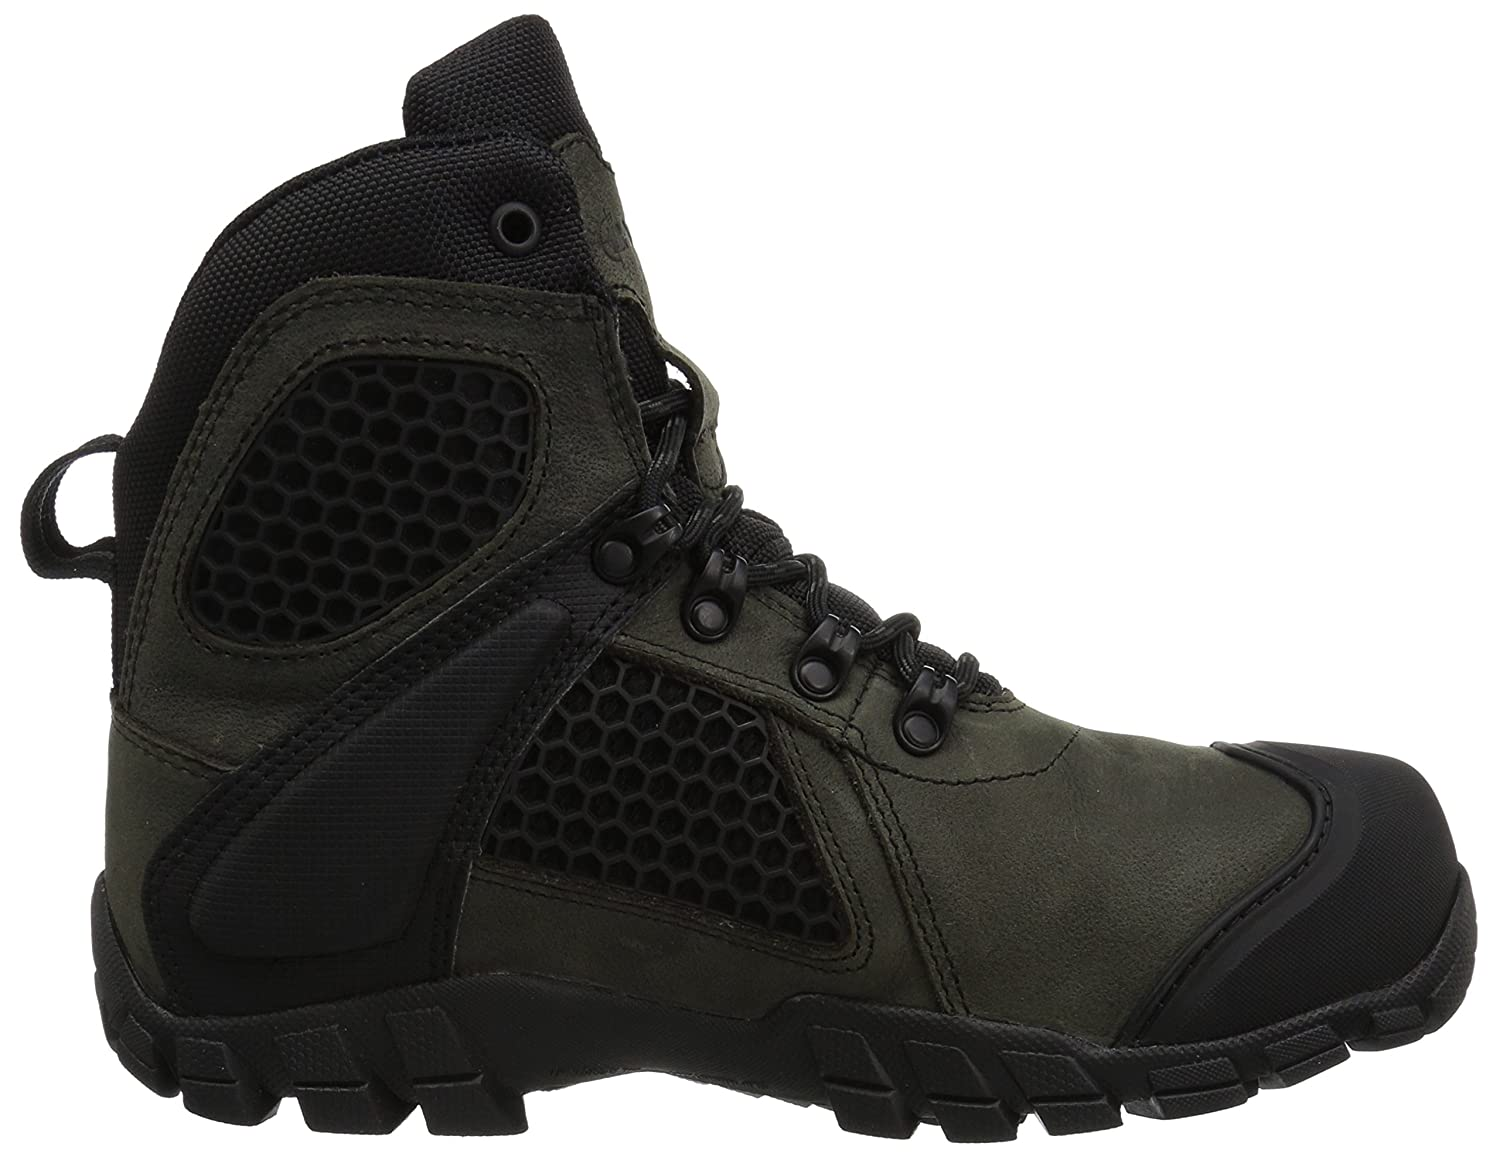 Bates Mens Shock FX Leather Leather Leather Stiefel 4a46e7